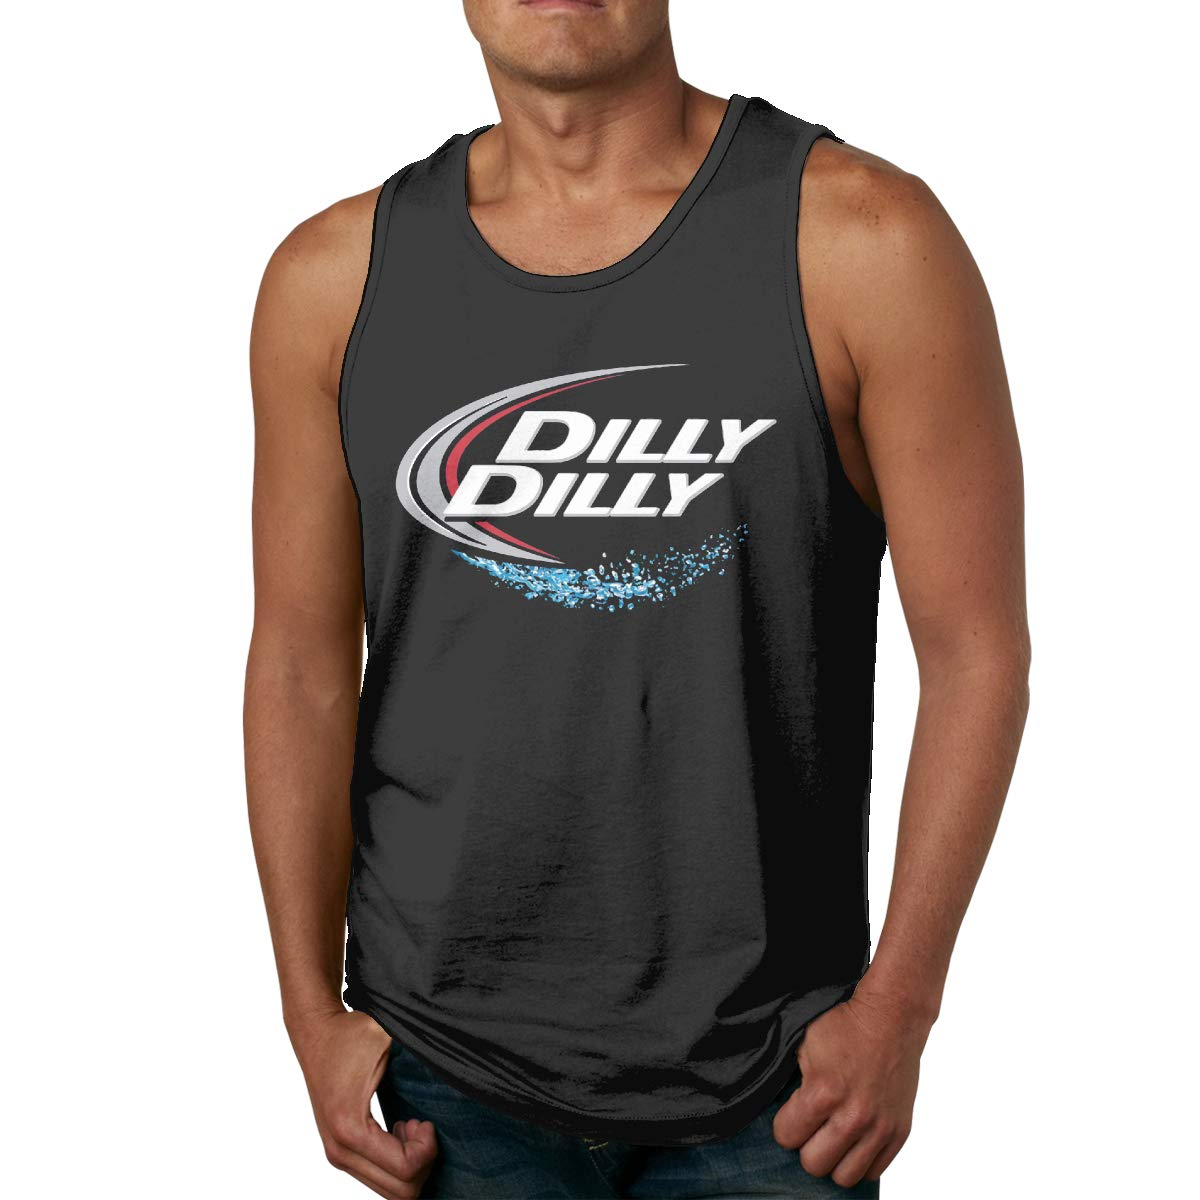 Dilly Dilly Splash Mens Printed Vest Sports Tank-Top Tee Leisure Sleeveless T Shirt